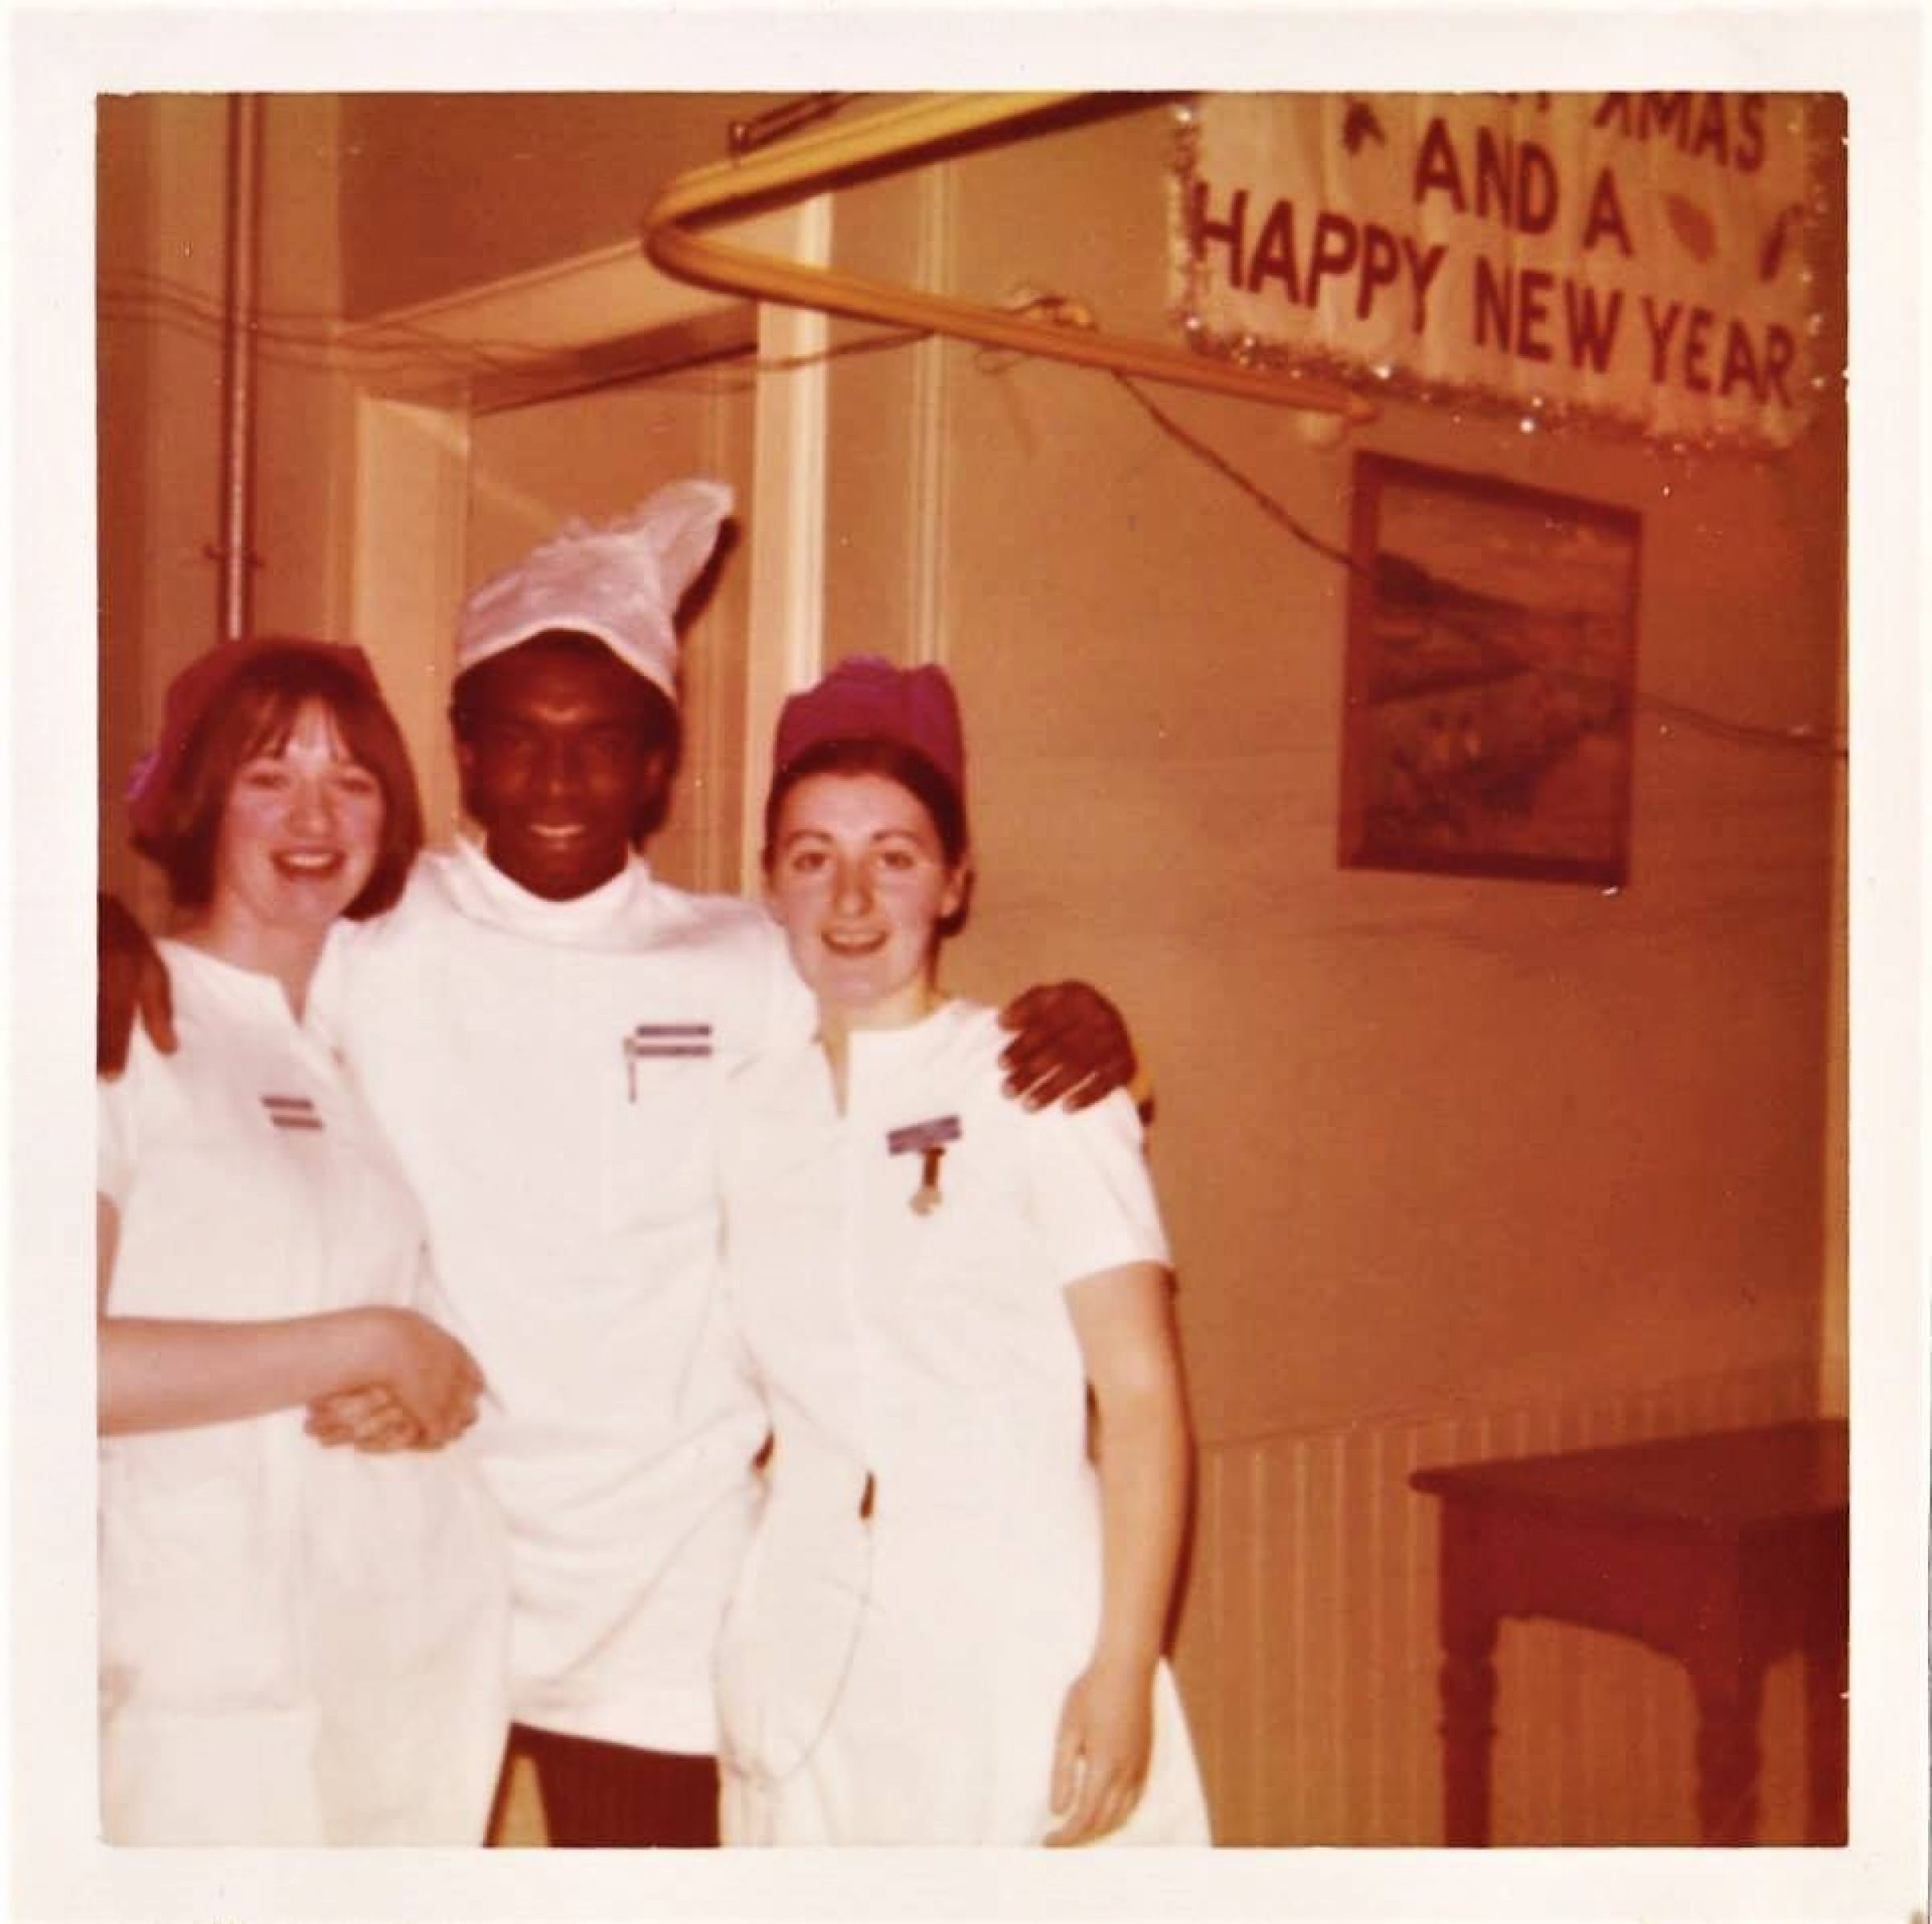 Angels on our shoulders... (My mate Phillip, with his colleagues Janet and Laura, circa 1973)